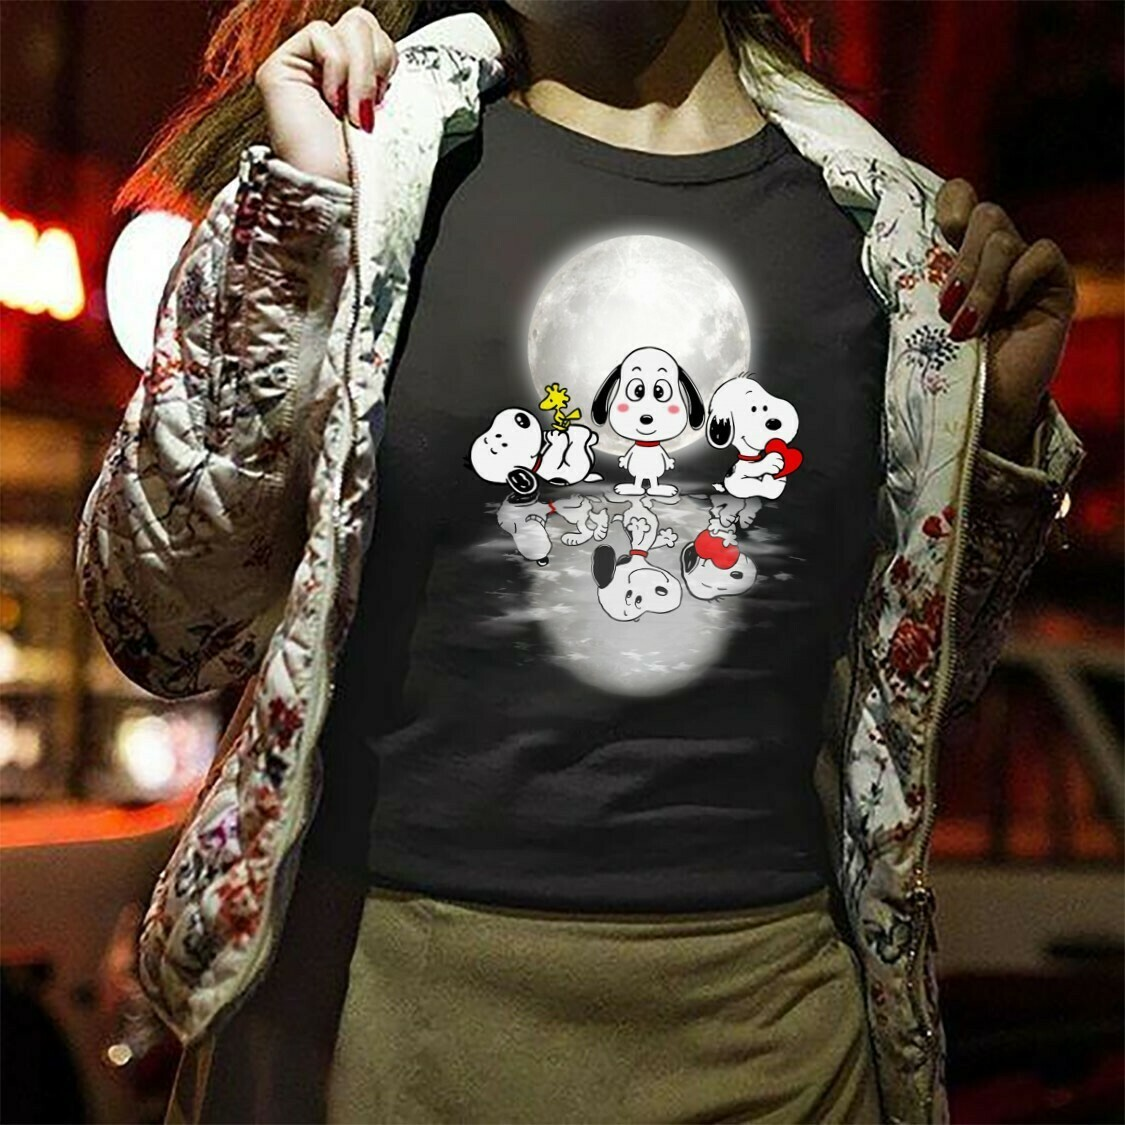 Snoopy And Woodstock a best friend Water Reflection Mirror,It's the Great Pumpkin Charlie Brown Fan,Shamrock St. Patrick's Day  T-Shirt Hoodie Sweatshirt Sweater Tee Kids Youth Gifts Jolly Family